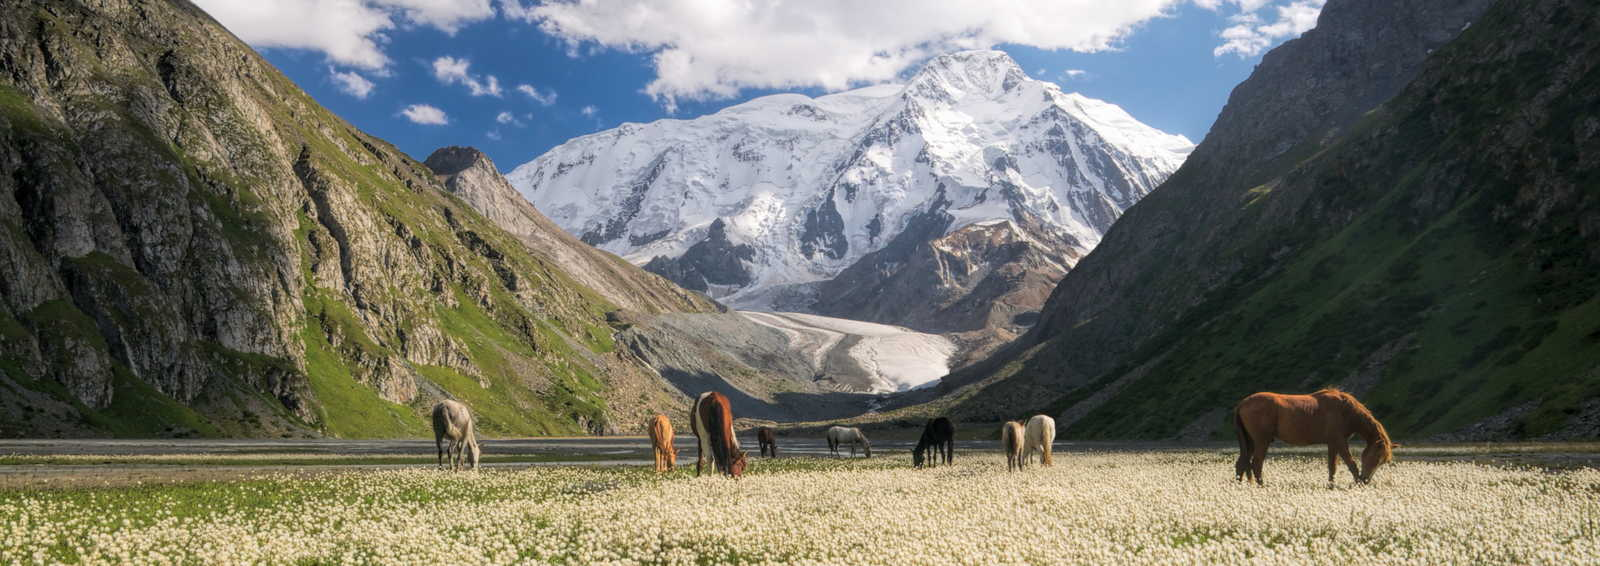 The Tien Shan Mountains, China